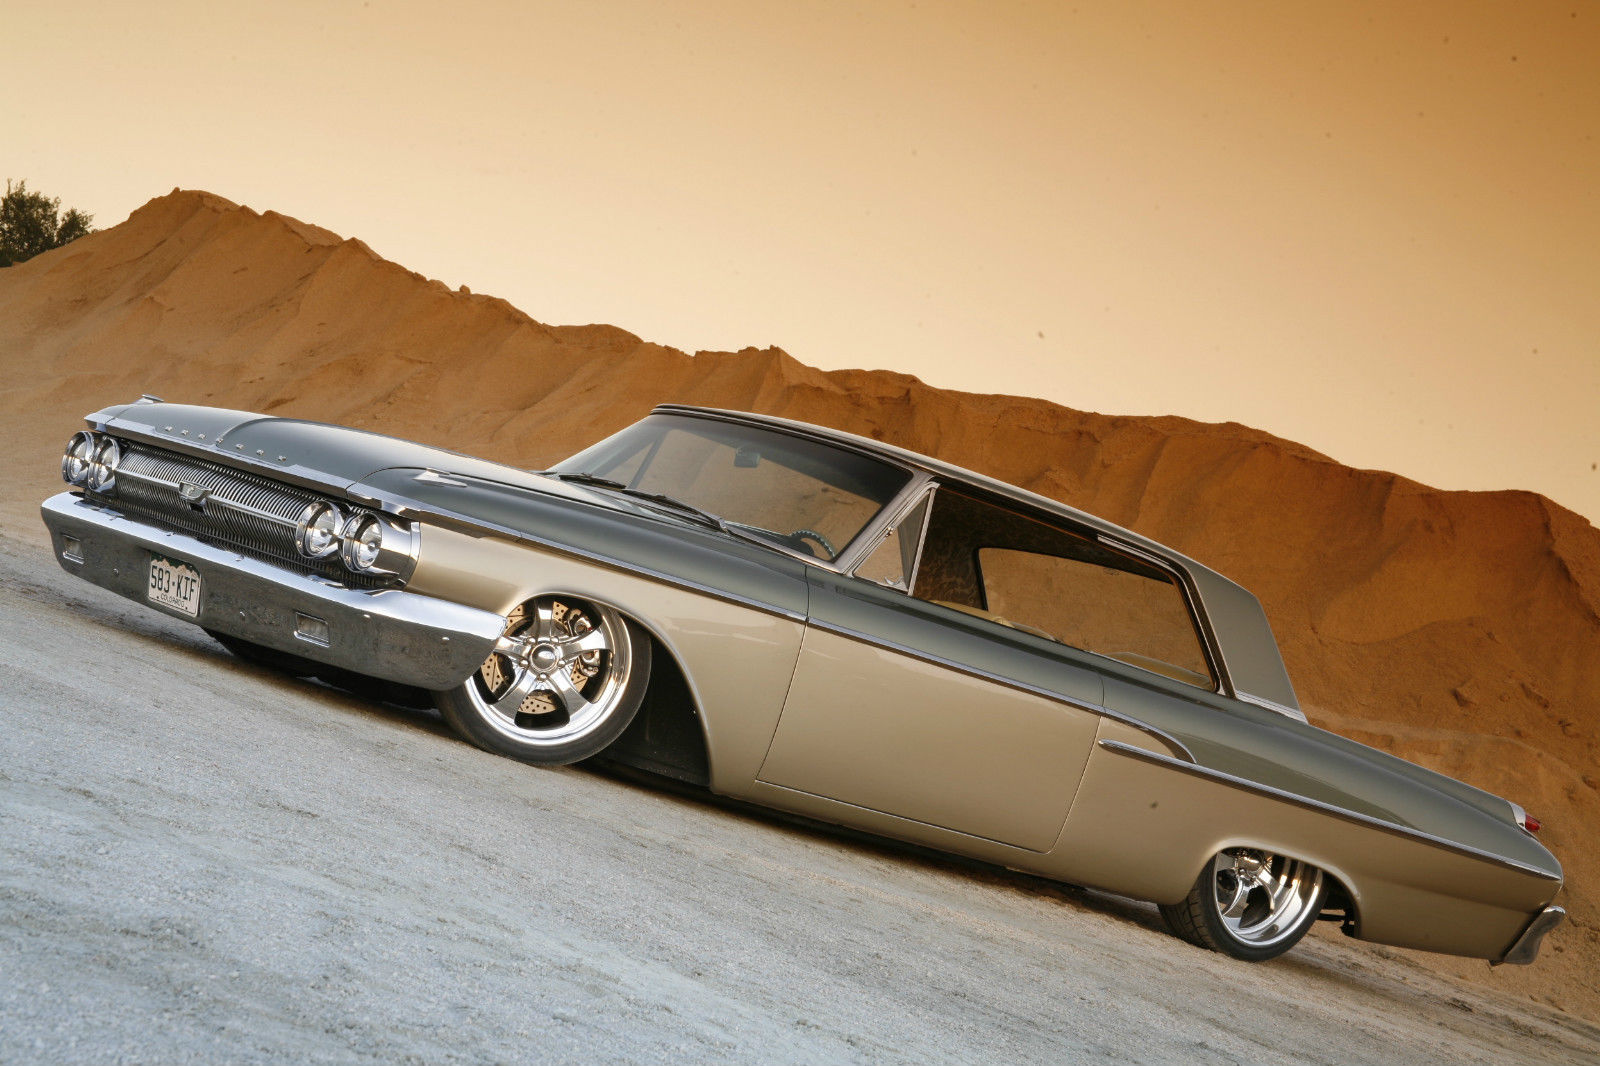 Cars For Sale Lincoln Ne >> 1962 Mercury Monterey S-55 Show car, custom, hot rod for sale: photos, technical specifications ...